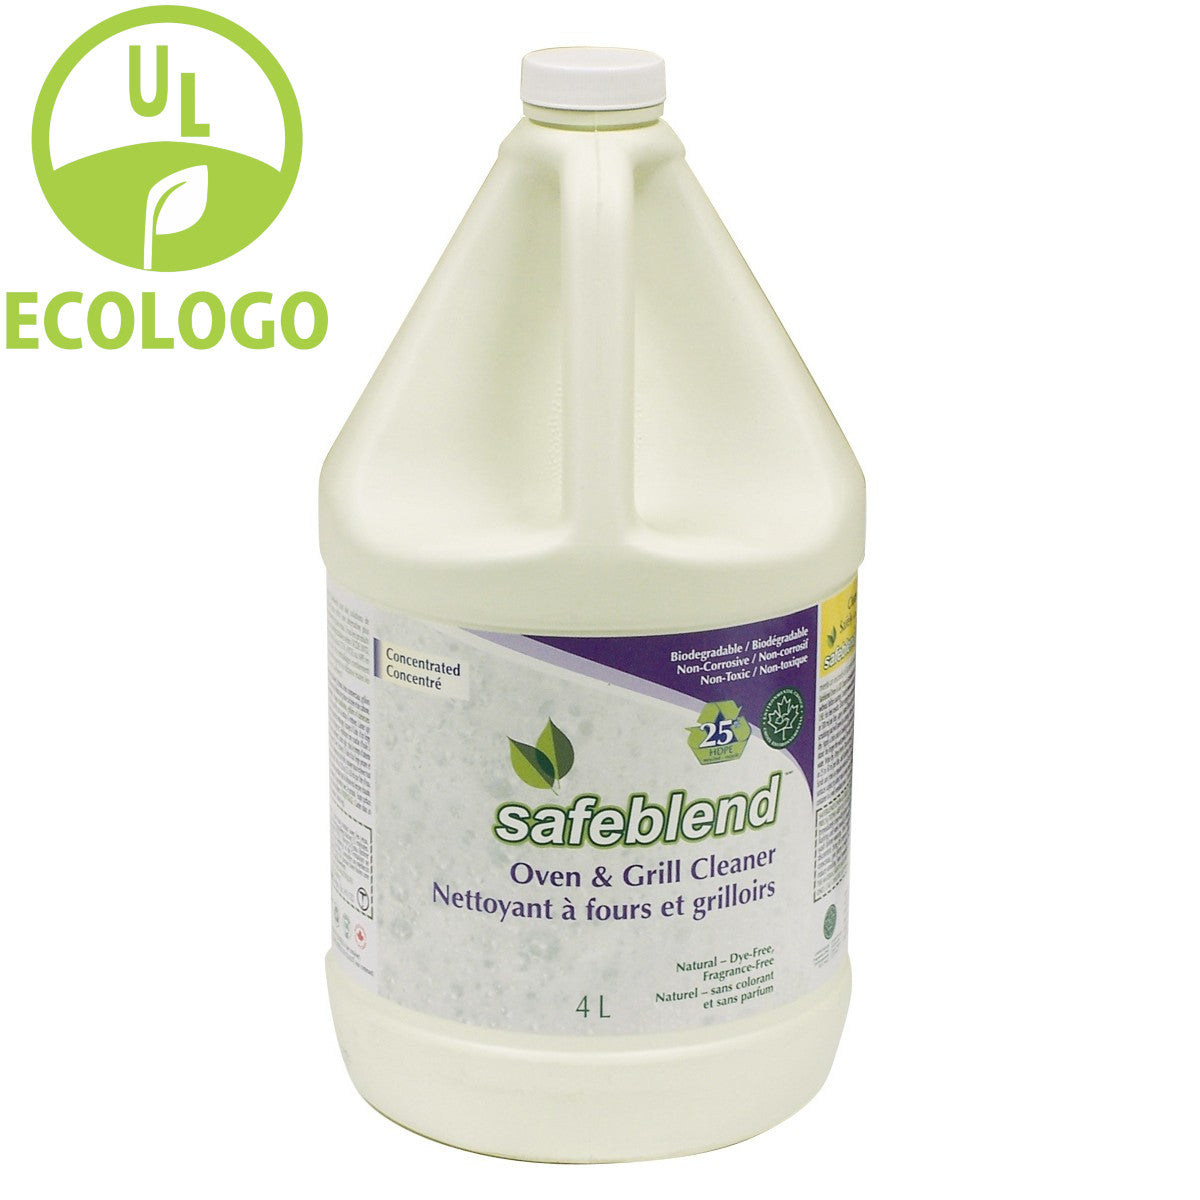 Safeblend EcoLogo Concentrated Oven and Grill Cleaner - 4L - Super Vacs